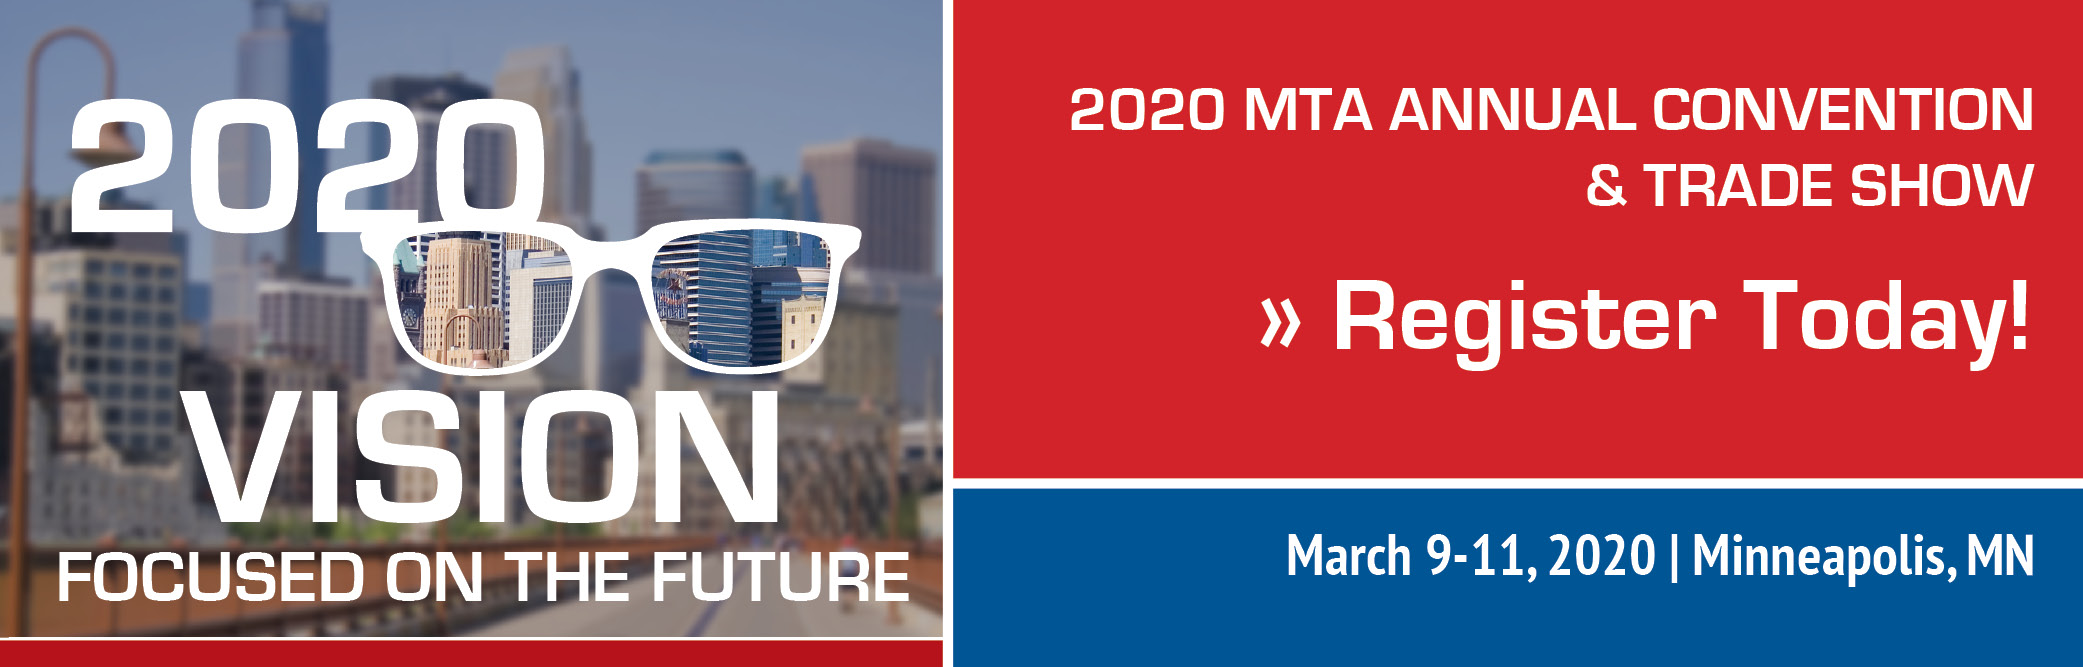 2020 Minnesota Telecom Alliance Annual Convention in Minneapolis